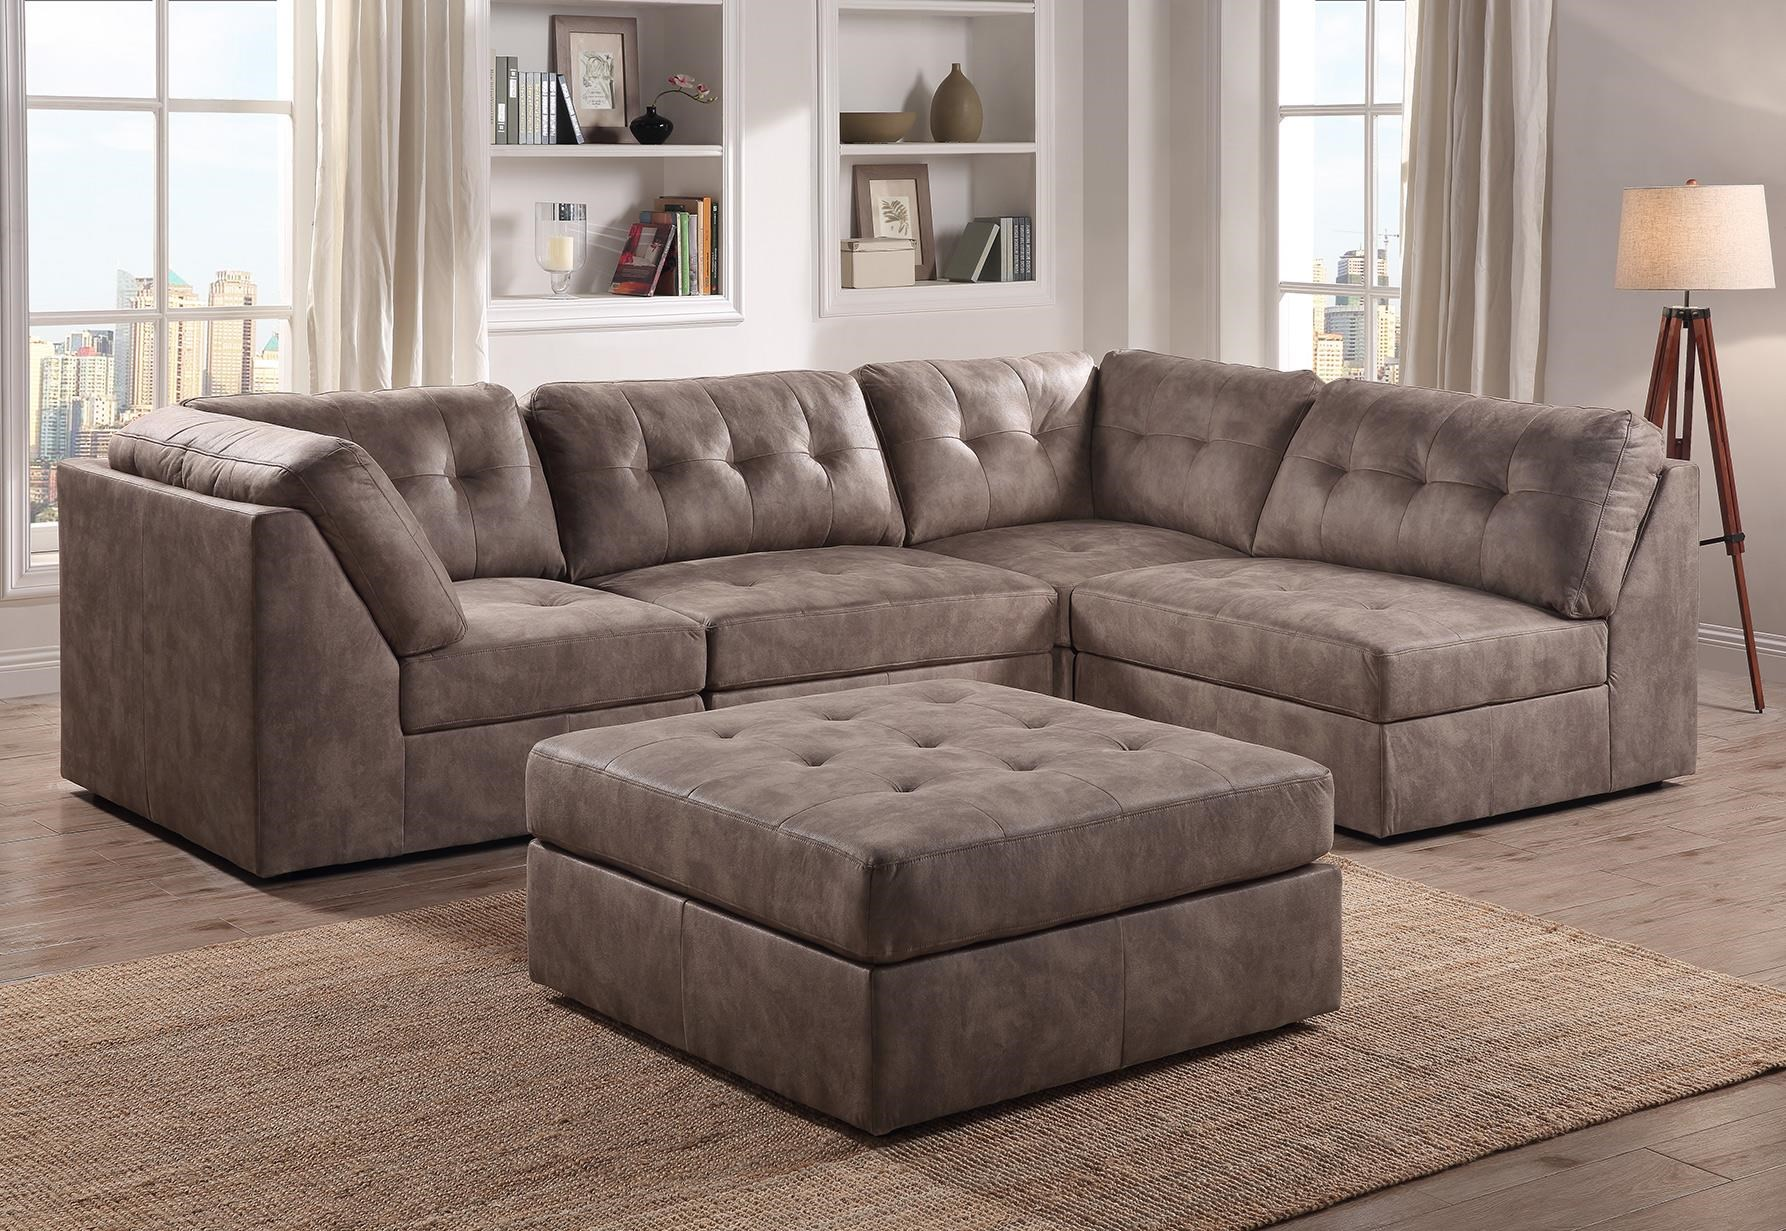 9377 Pecan 4 PC SECTIONAL by Lifestyle at Furniture Fair - North Carolina